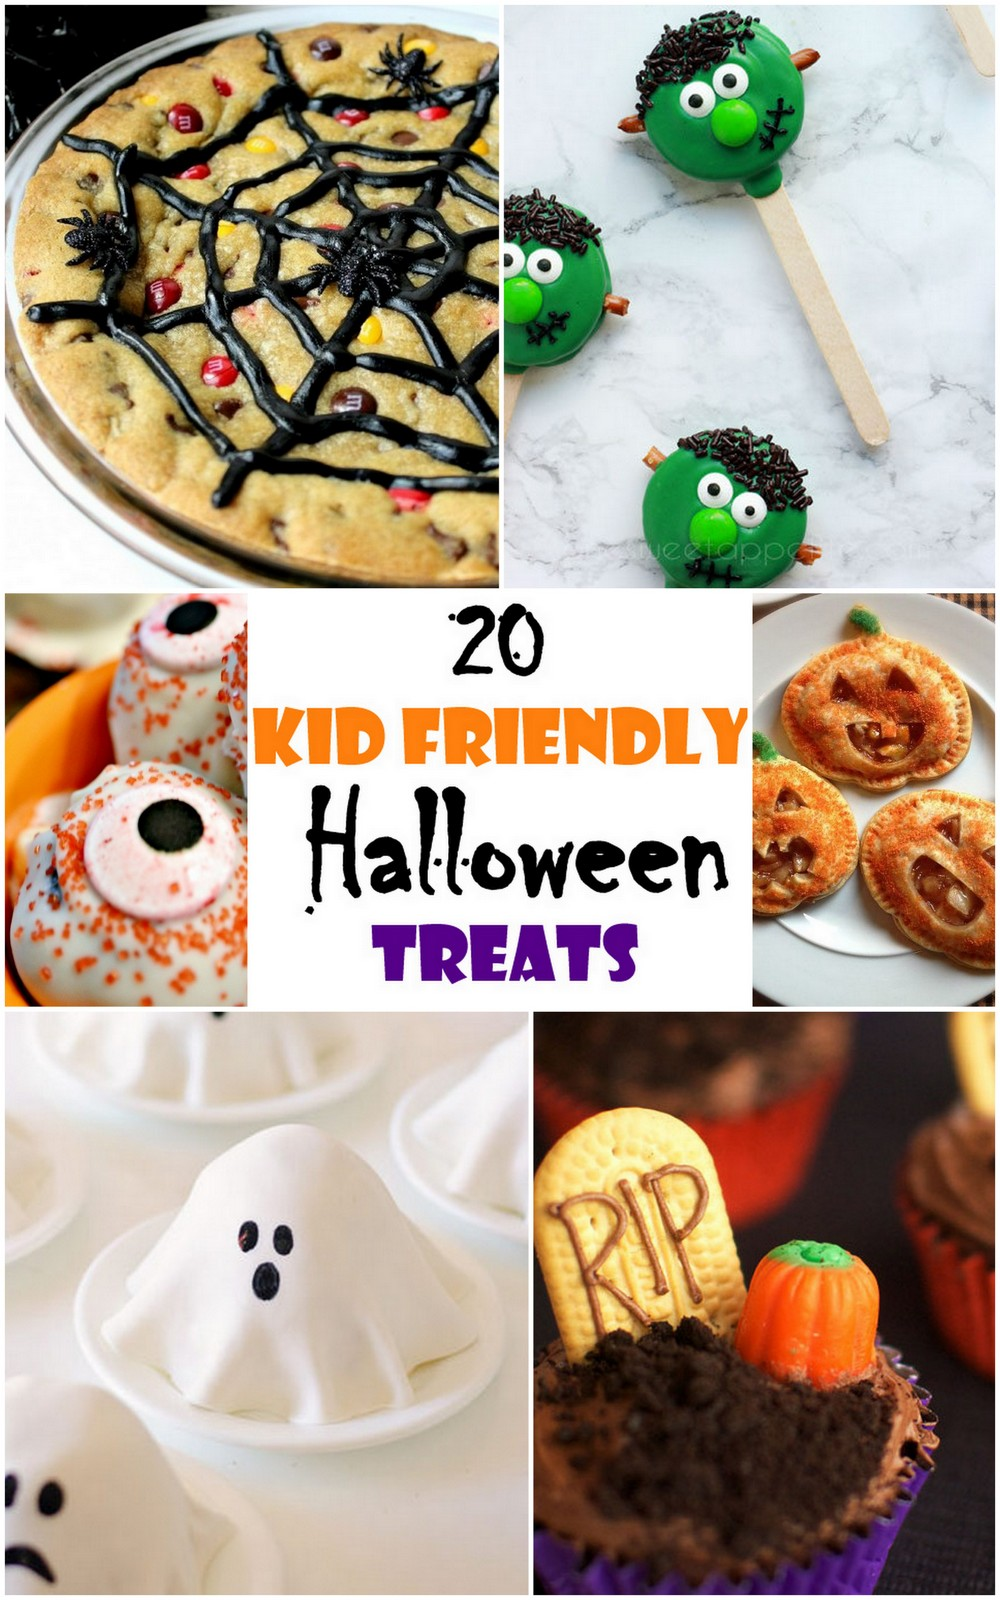 20 Kid-Friendly Halloween Treats Ideas! | SandyALaMode